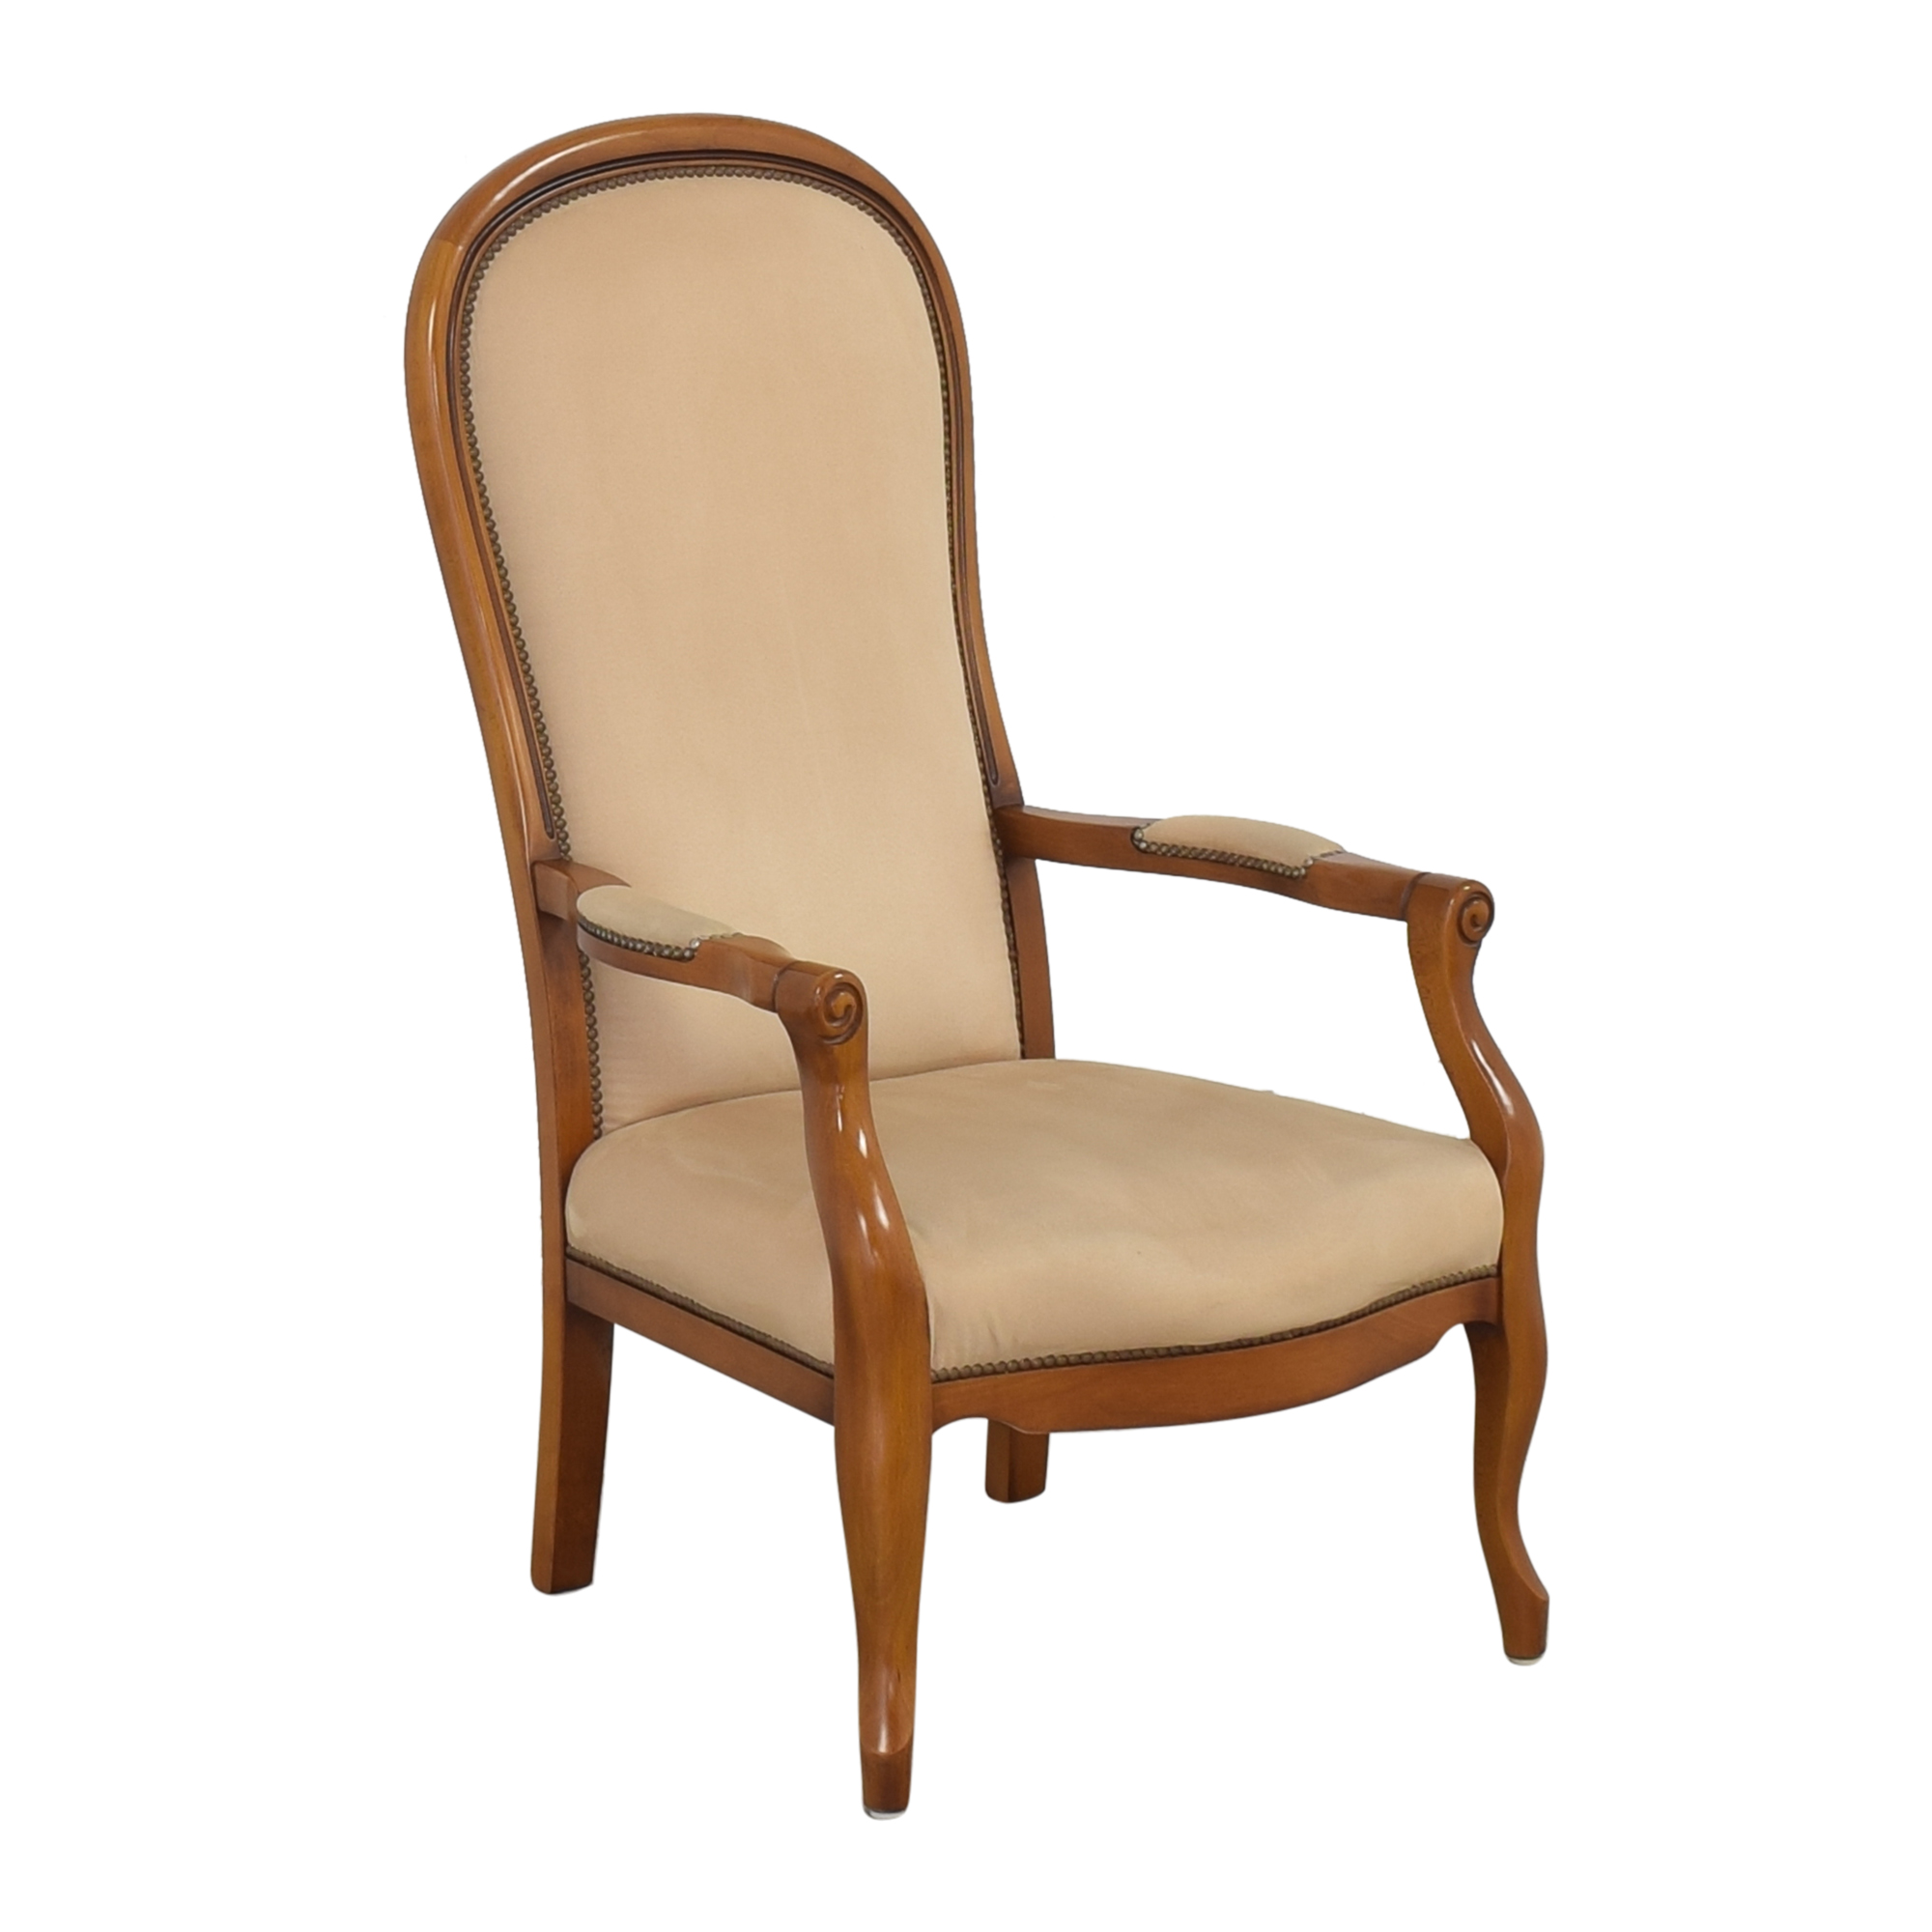 Upholstered Accent Arm Chair beige & brown